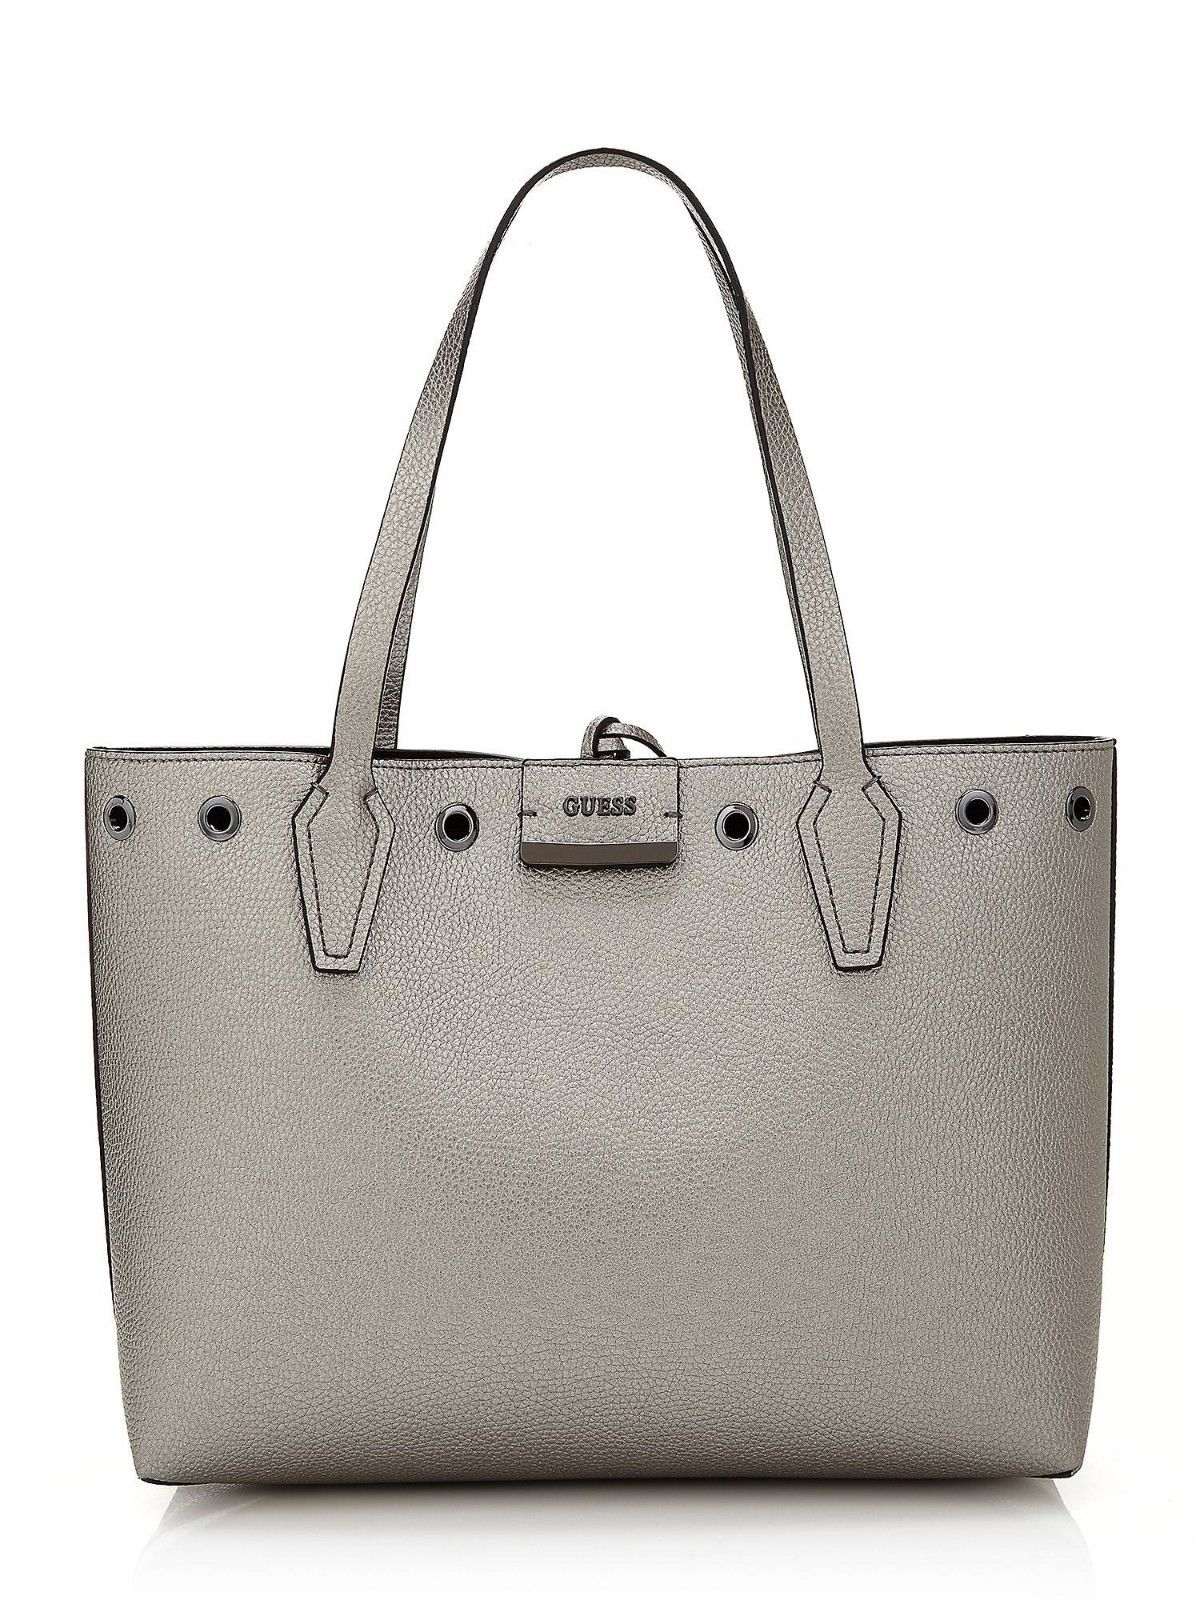 BORSA BORSE DONNA GUESS ORIGINAL HWGM6422150 BOBBI ECO PELLE BAG P/E 2018 NEW